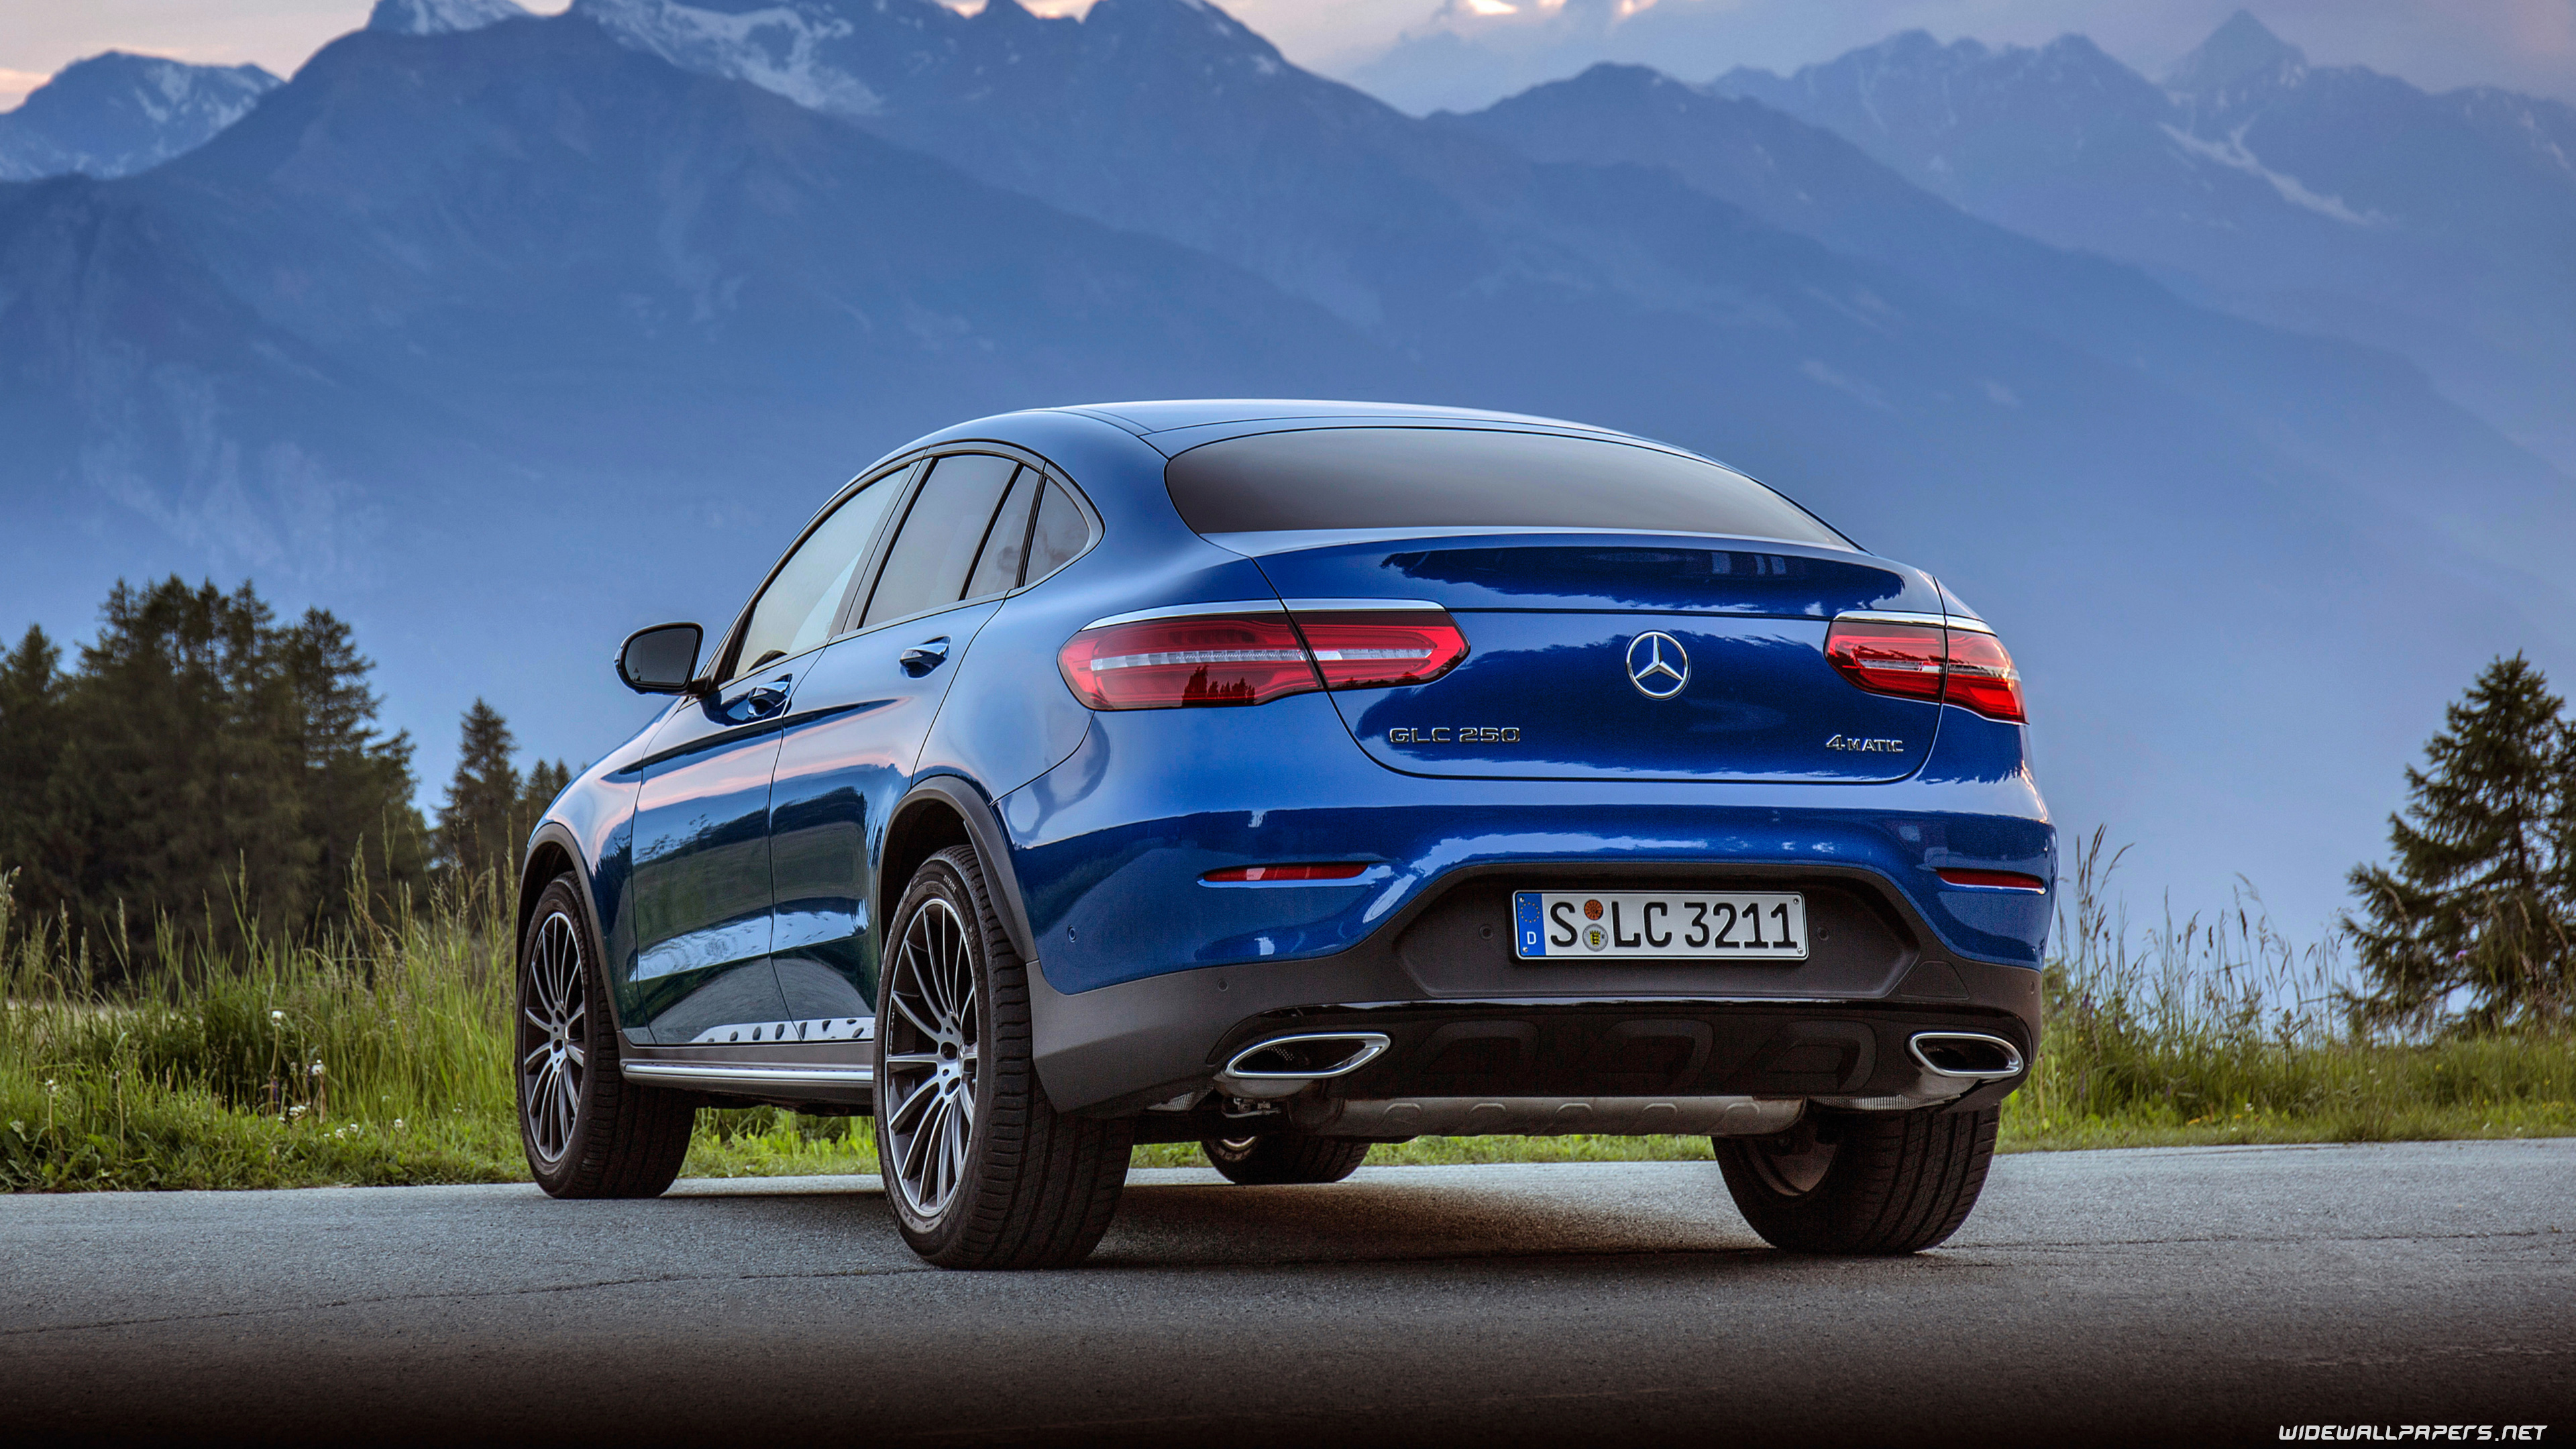 Mercedes benz glc class coupe cars desktop wallpapers 4k for Mercedes benz cars com